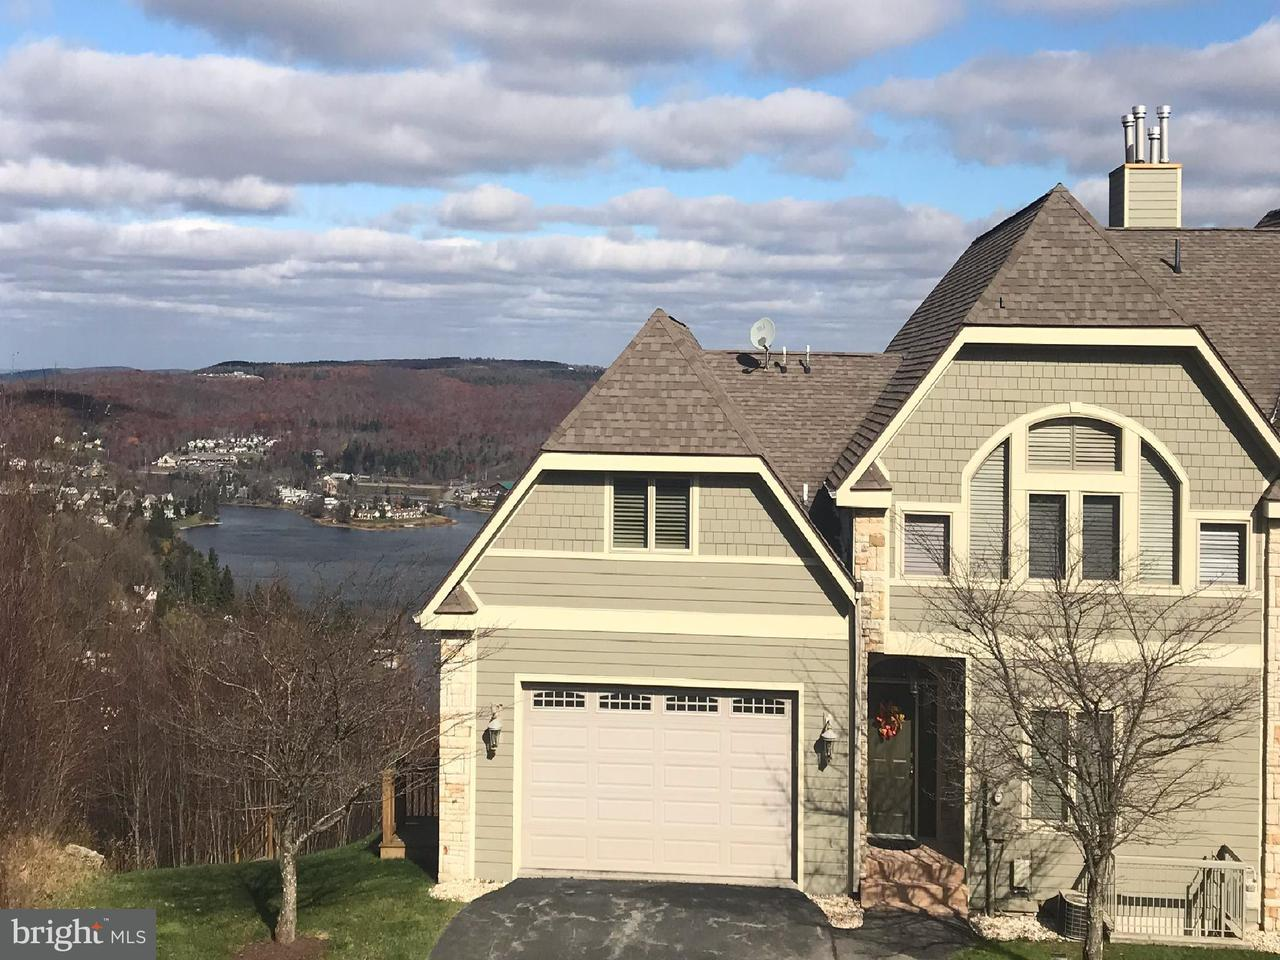 Townhouse for Sale at 604 OVERLOOK PASS RD N #3C 604 OVERLOOK PASS RD N #3C Mc Henry, Maryland 21541 United States